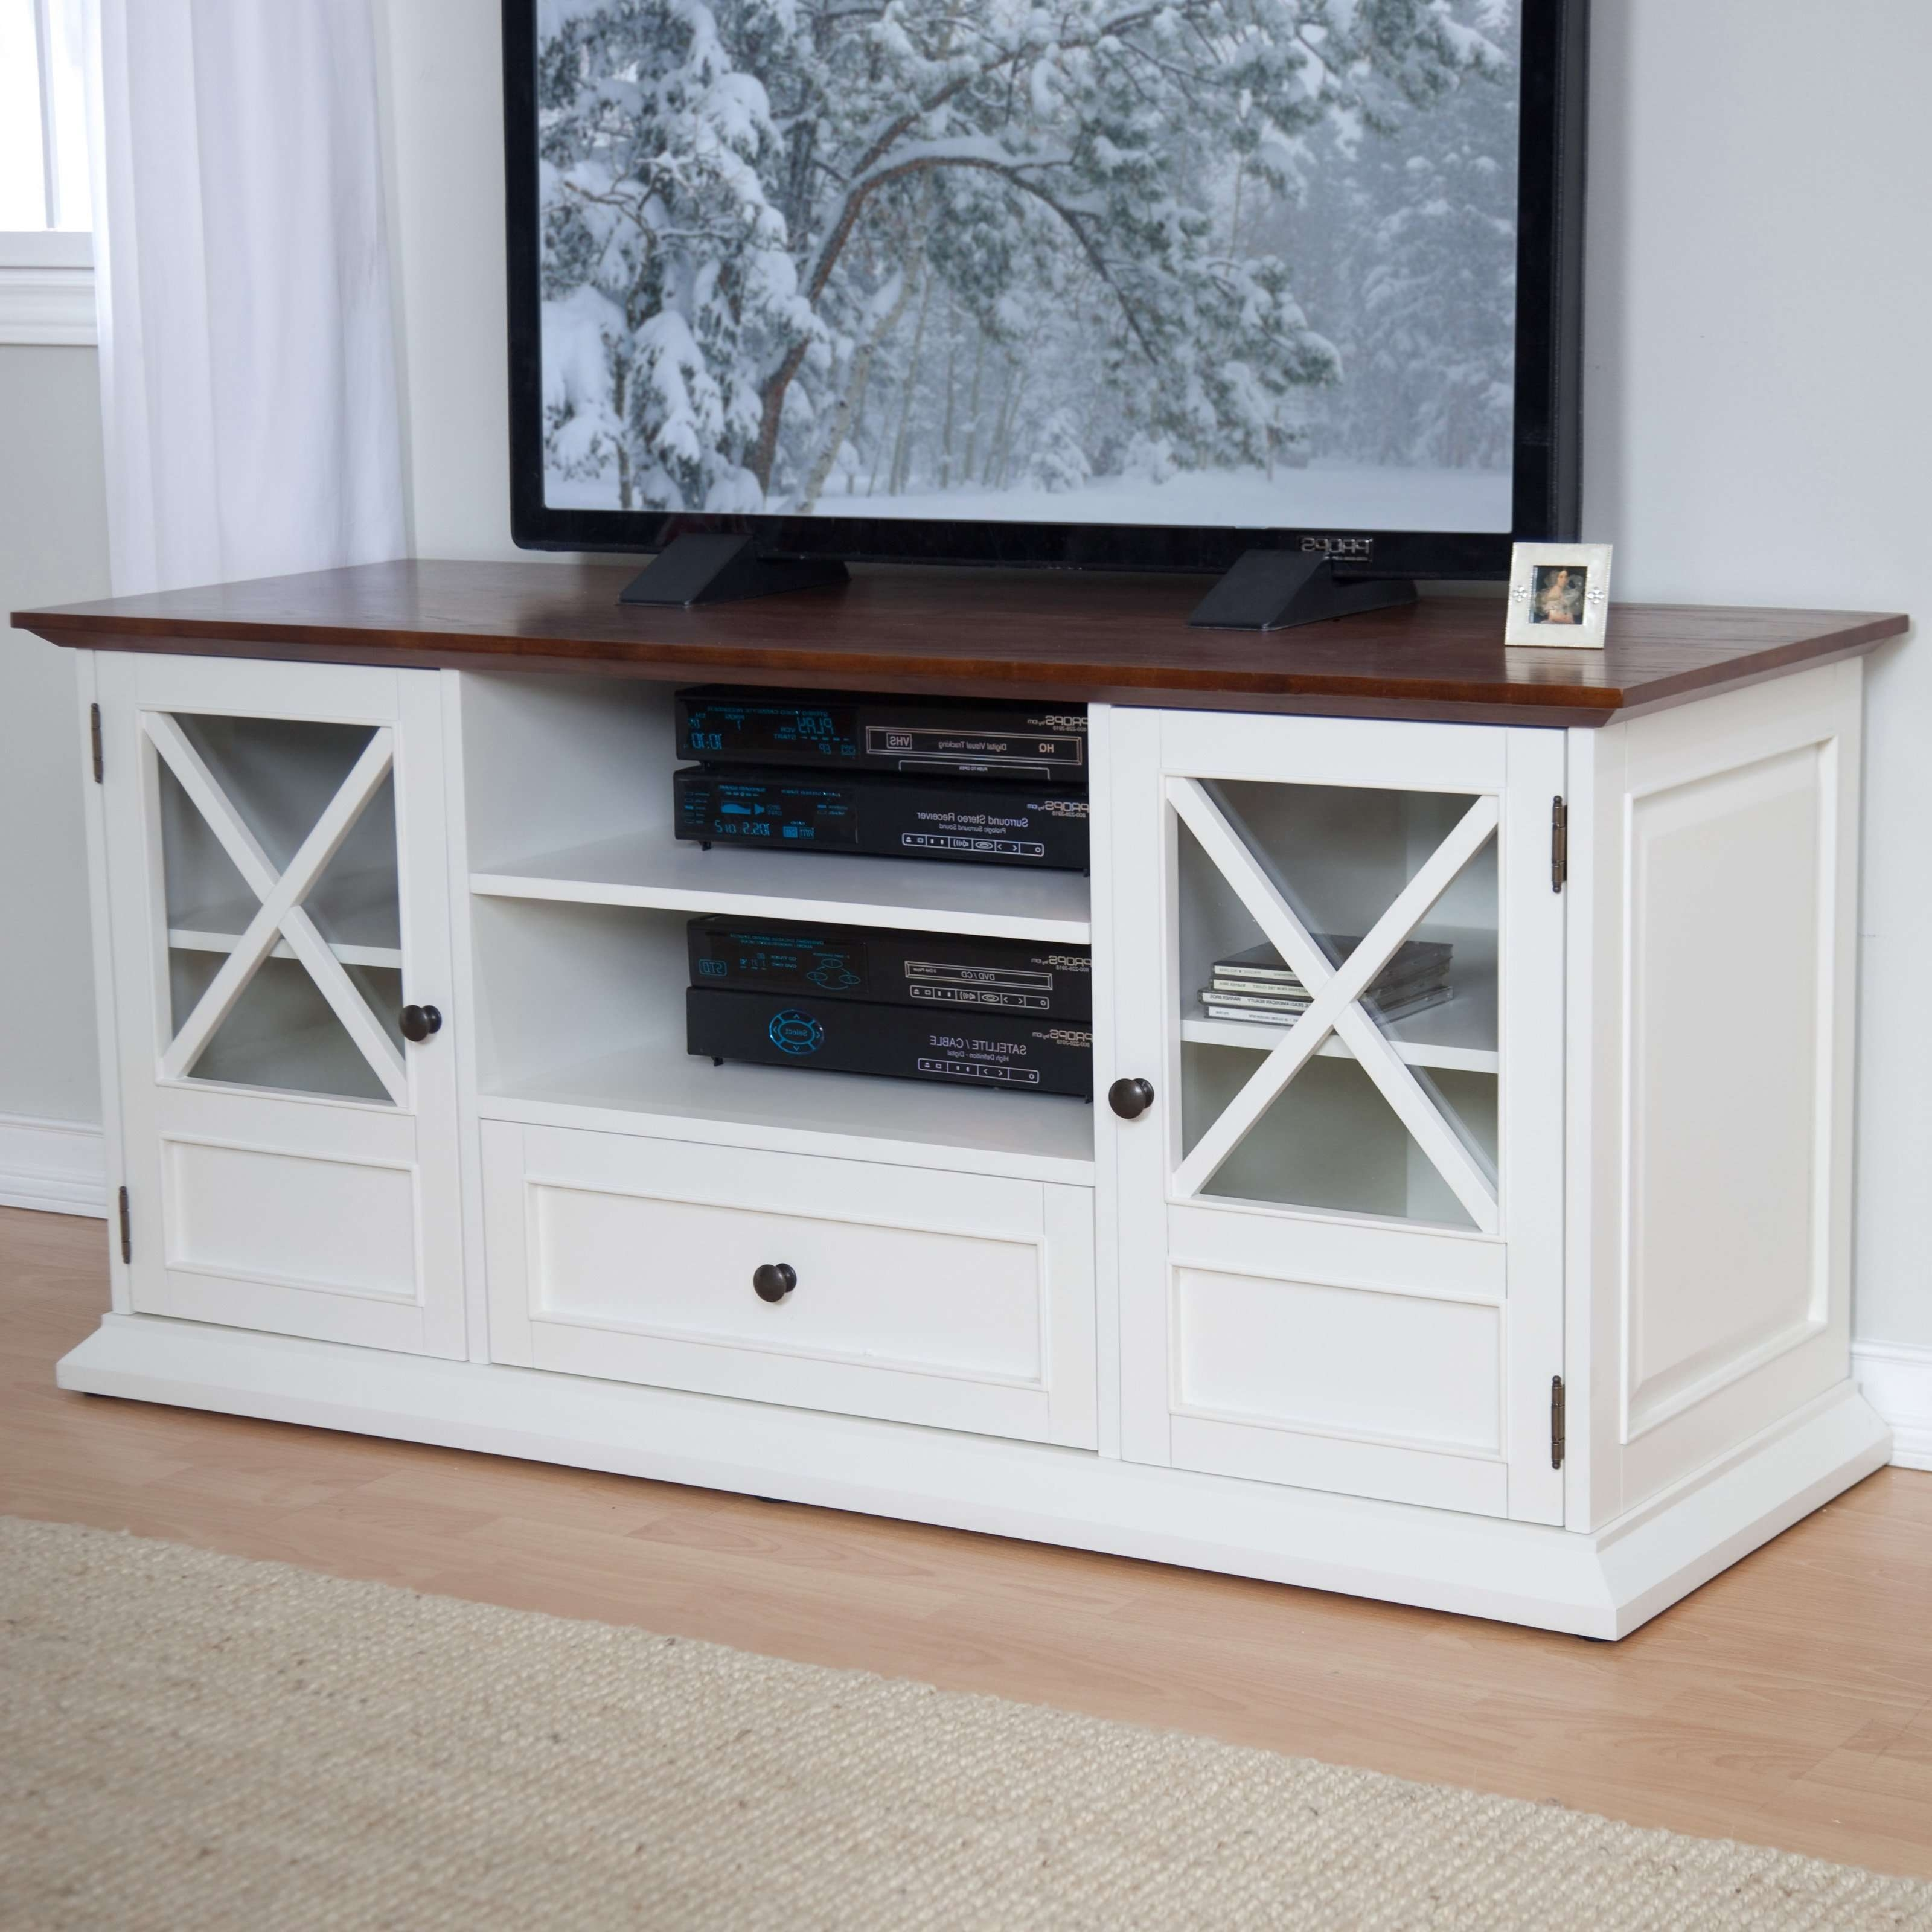 Tv Stands & Entertainment Centers | Hayneedle With Regard To Cream Corner Tv Stands (View 3 of 15)